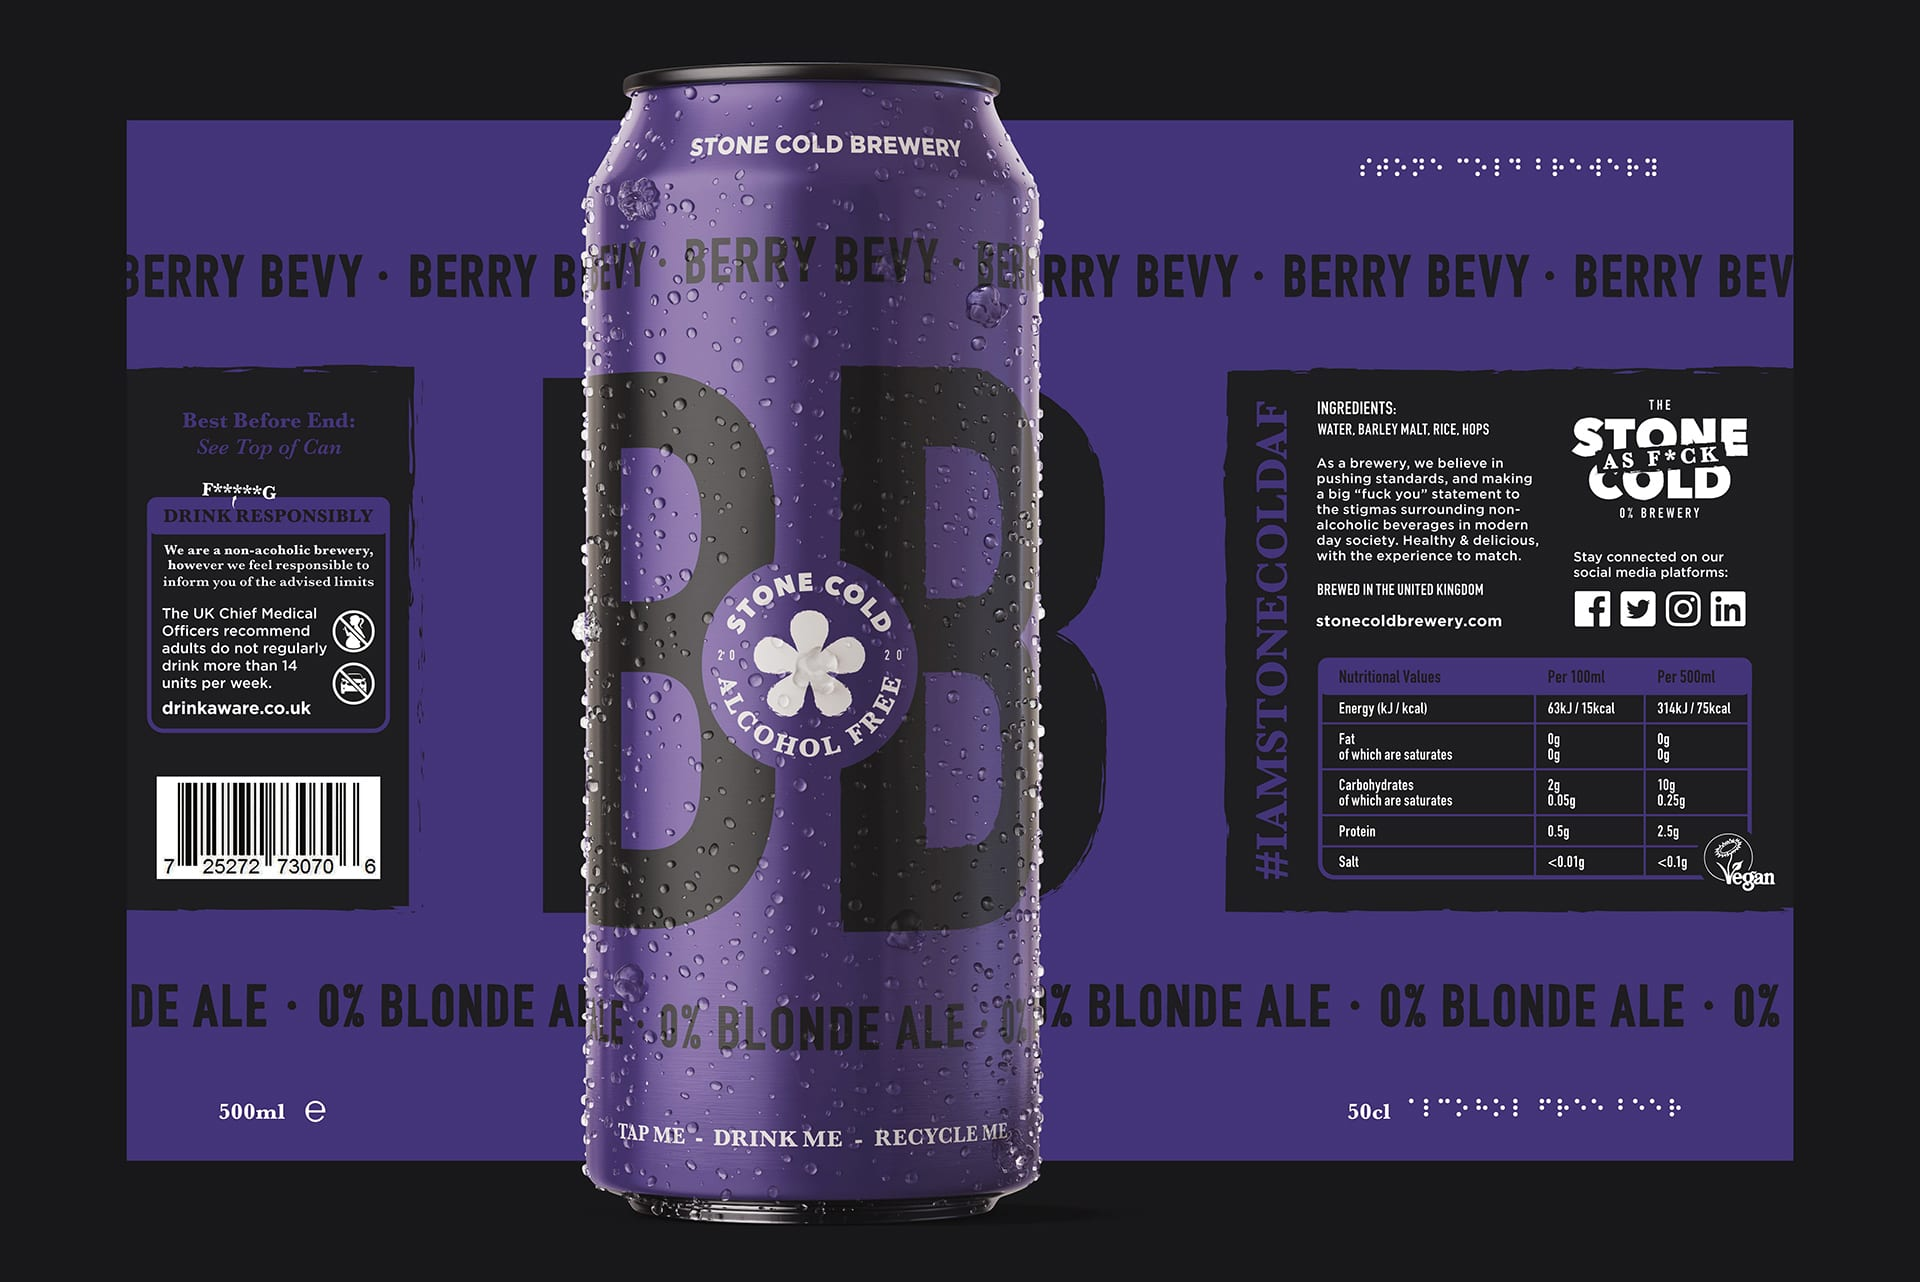 Stone Cold Alcohol Free Beer Can + Label - Berry Bevy 0% Blonde Ale